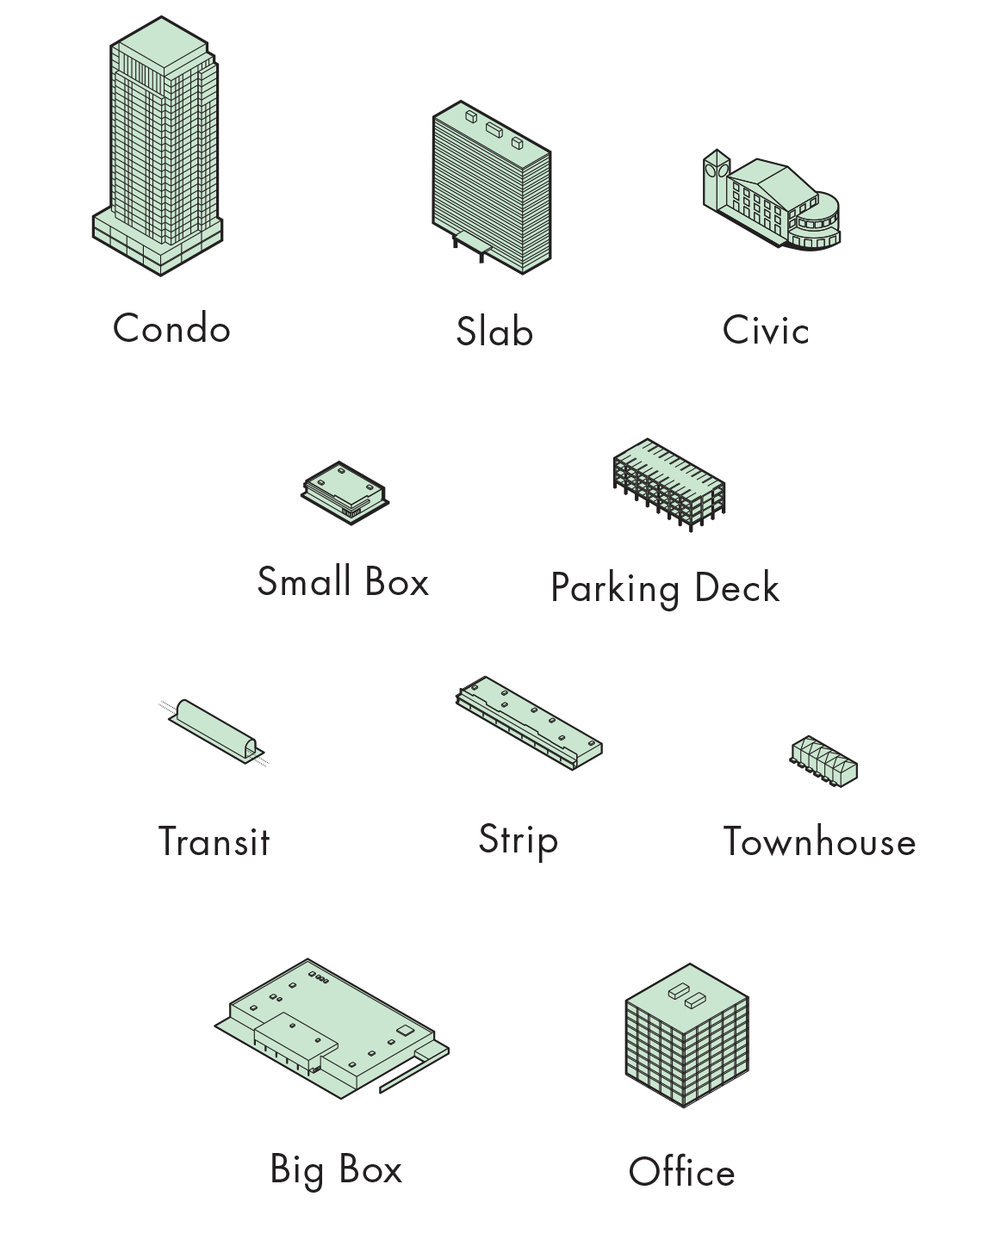 Image 6 / The Game Pieces—Architectural Types, 2015. Illustration by Emma Dunn, Michael Piper, and Zoe Renaud